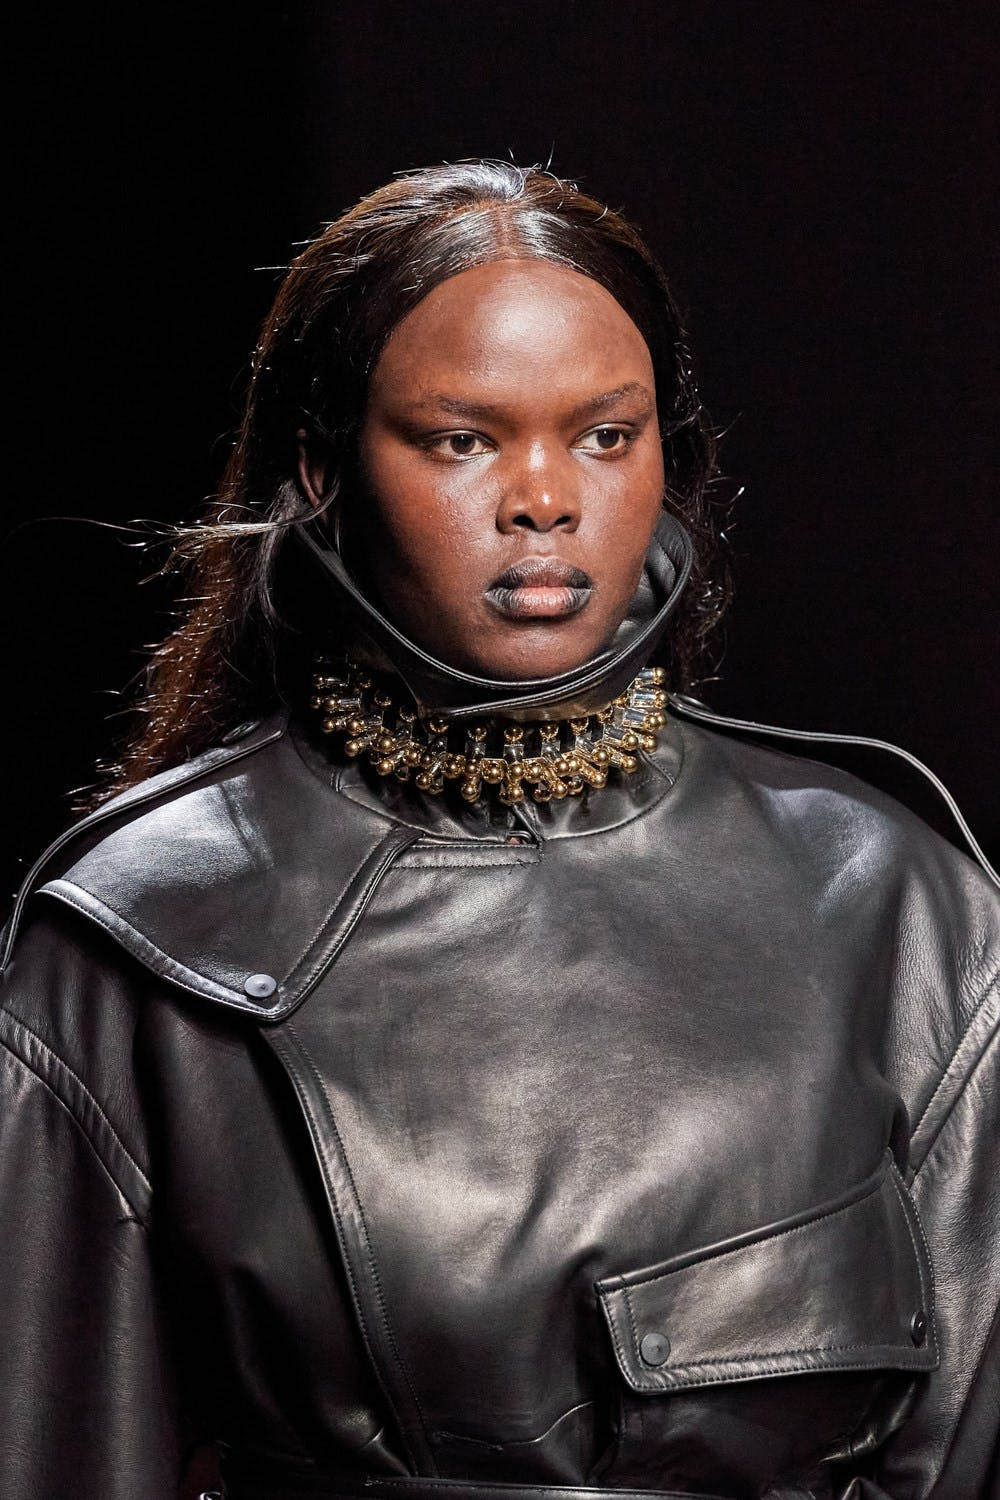 Mugler Runway Details Oversized Belted Jacket in Black Leather Chunky Choker in Gold Fall 20 RTW